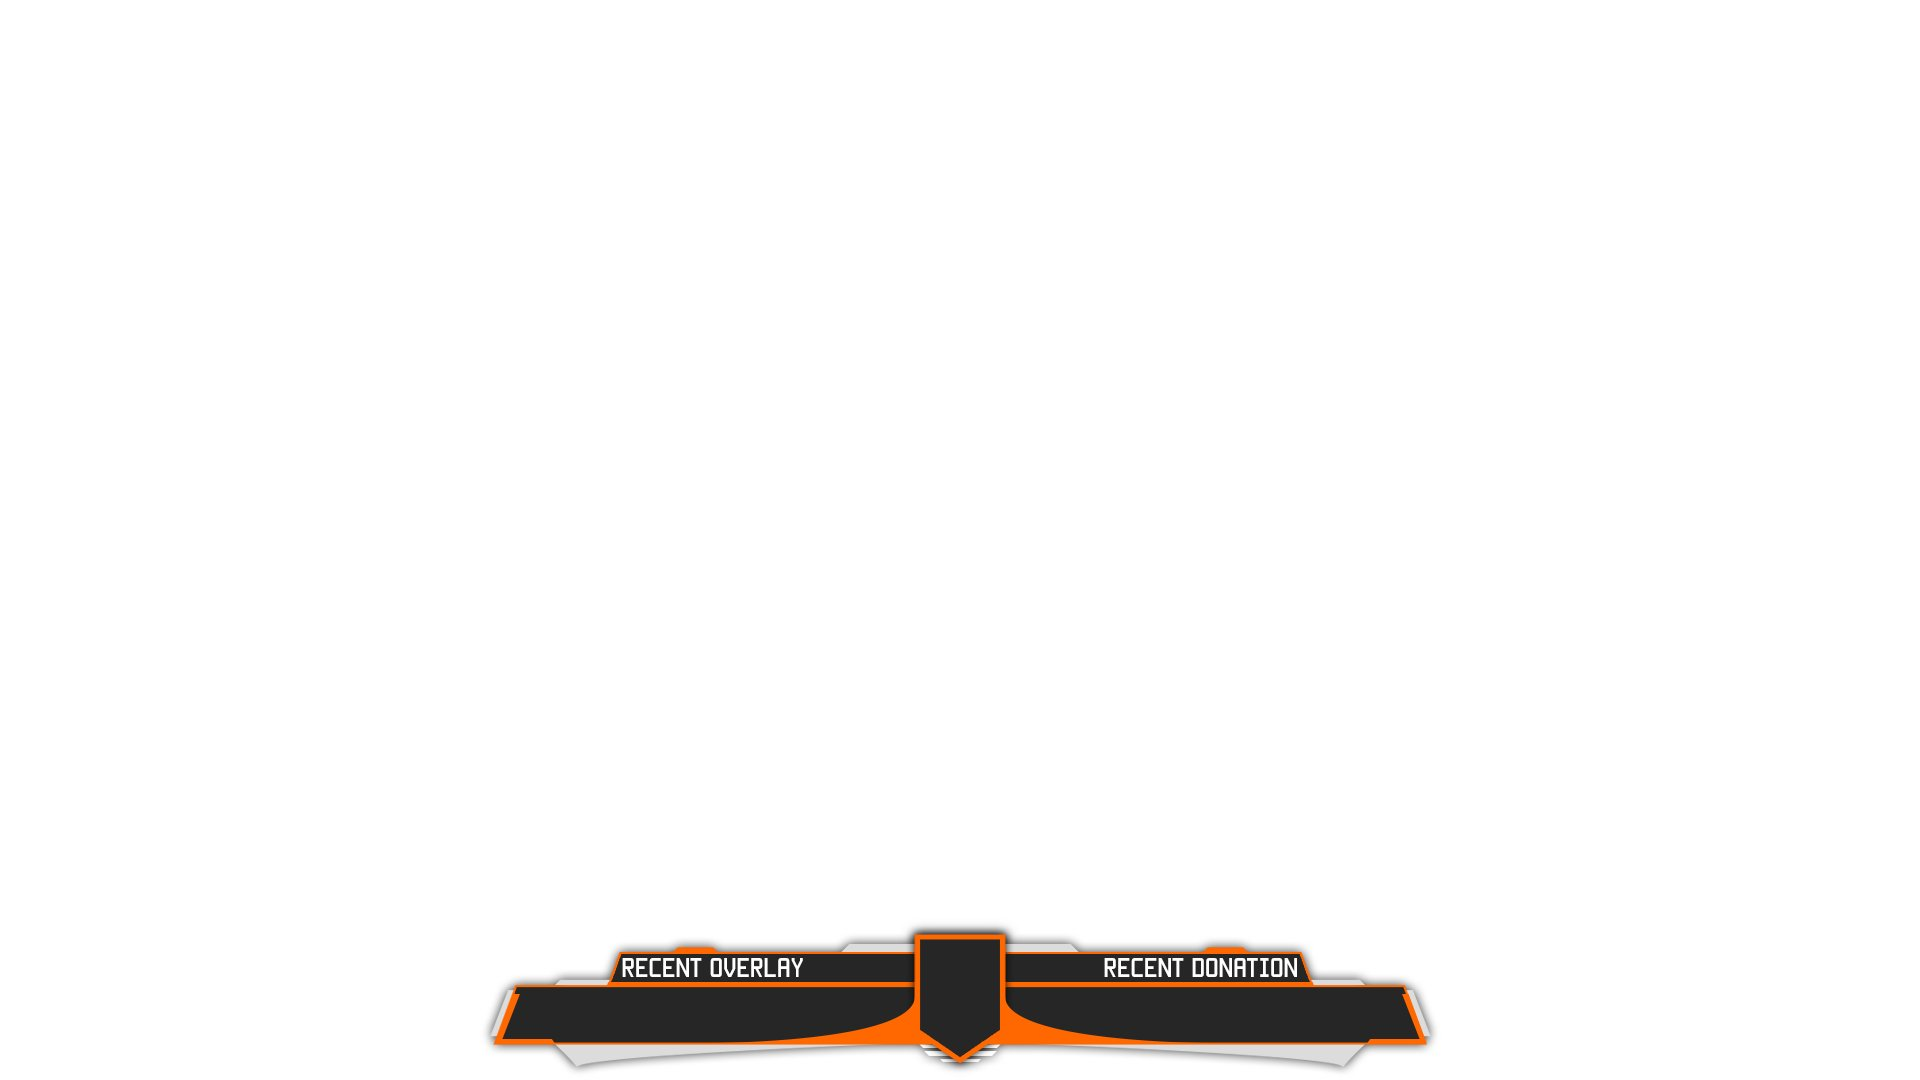 twitch overlay obs